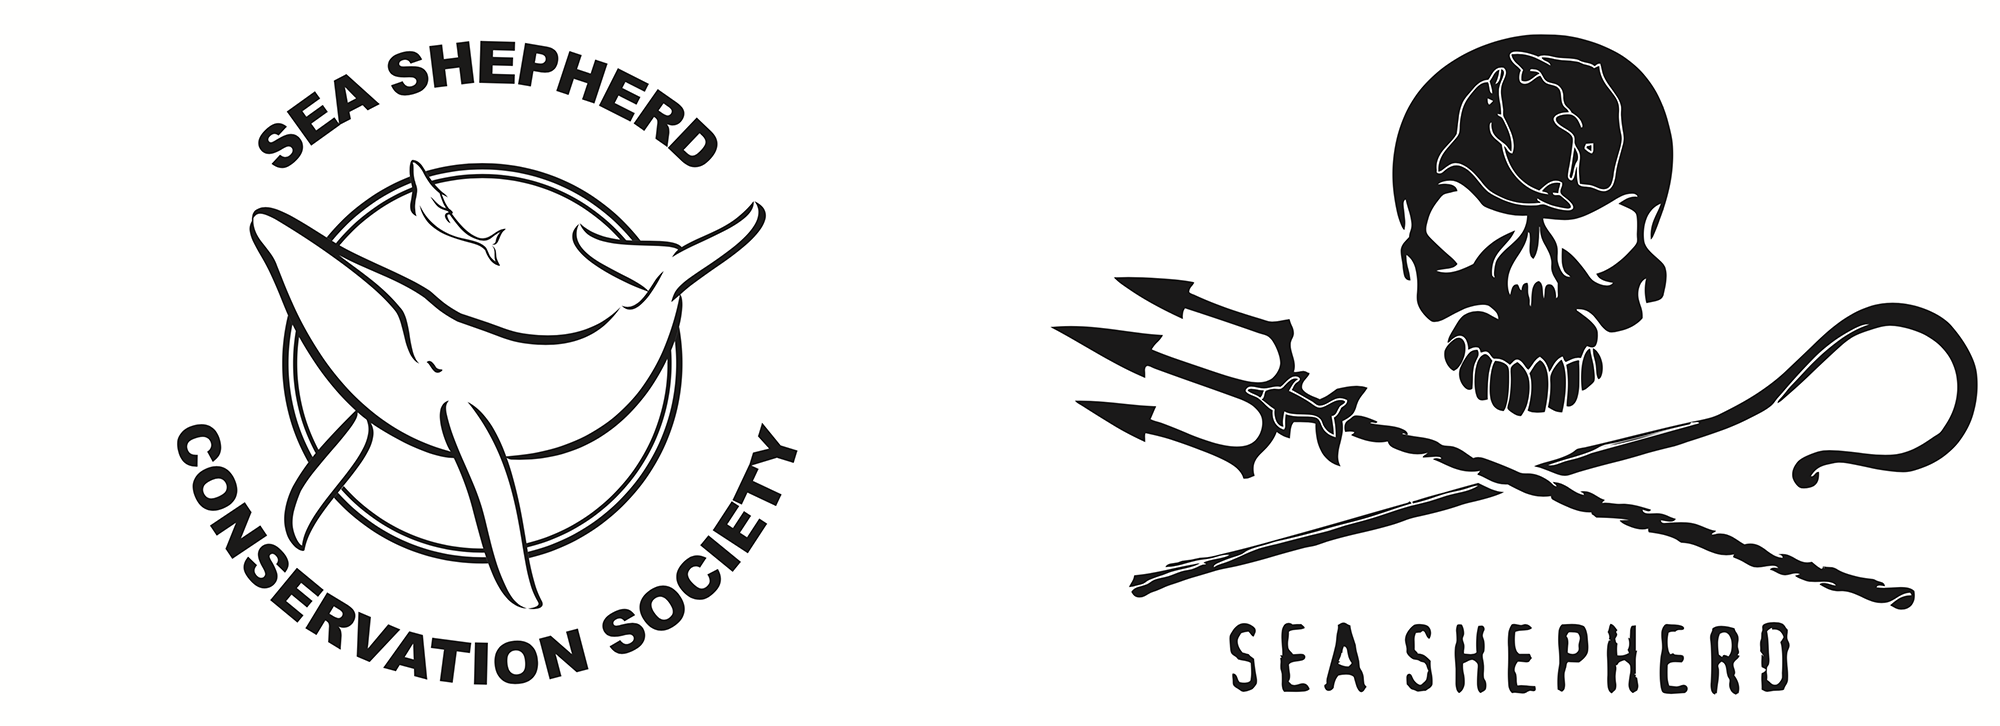 sea-shepherd-graphic-design